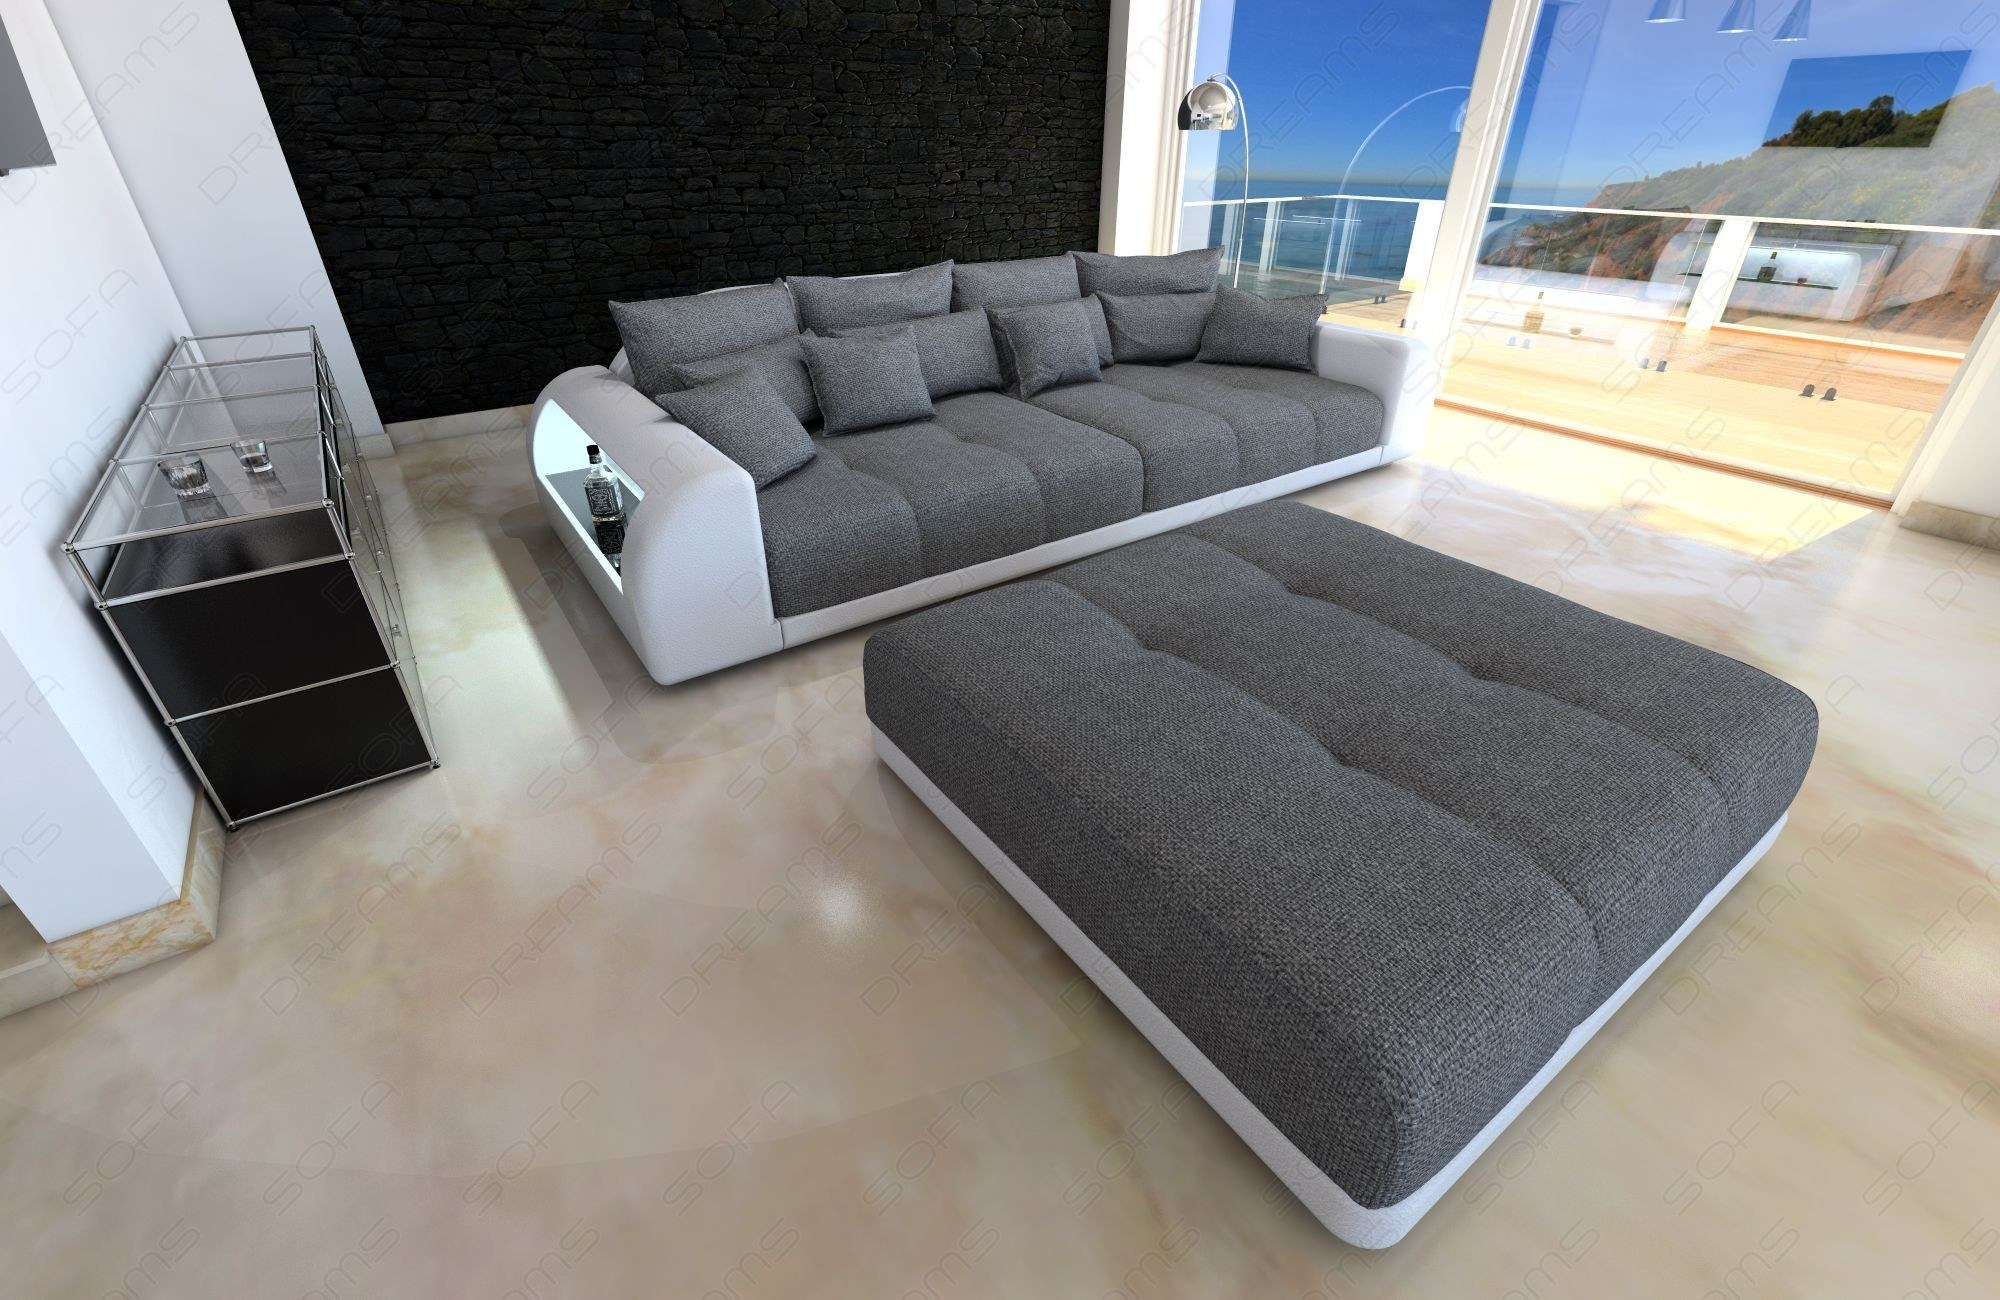 XXL Fabric Sofa Miami with LED Lights grey - Hugo 5